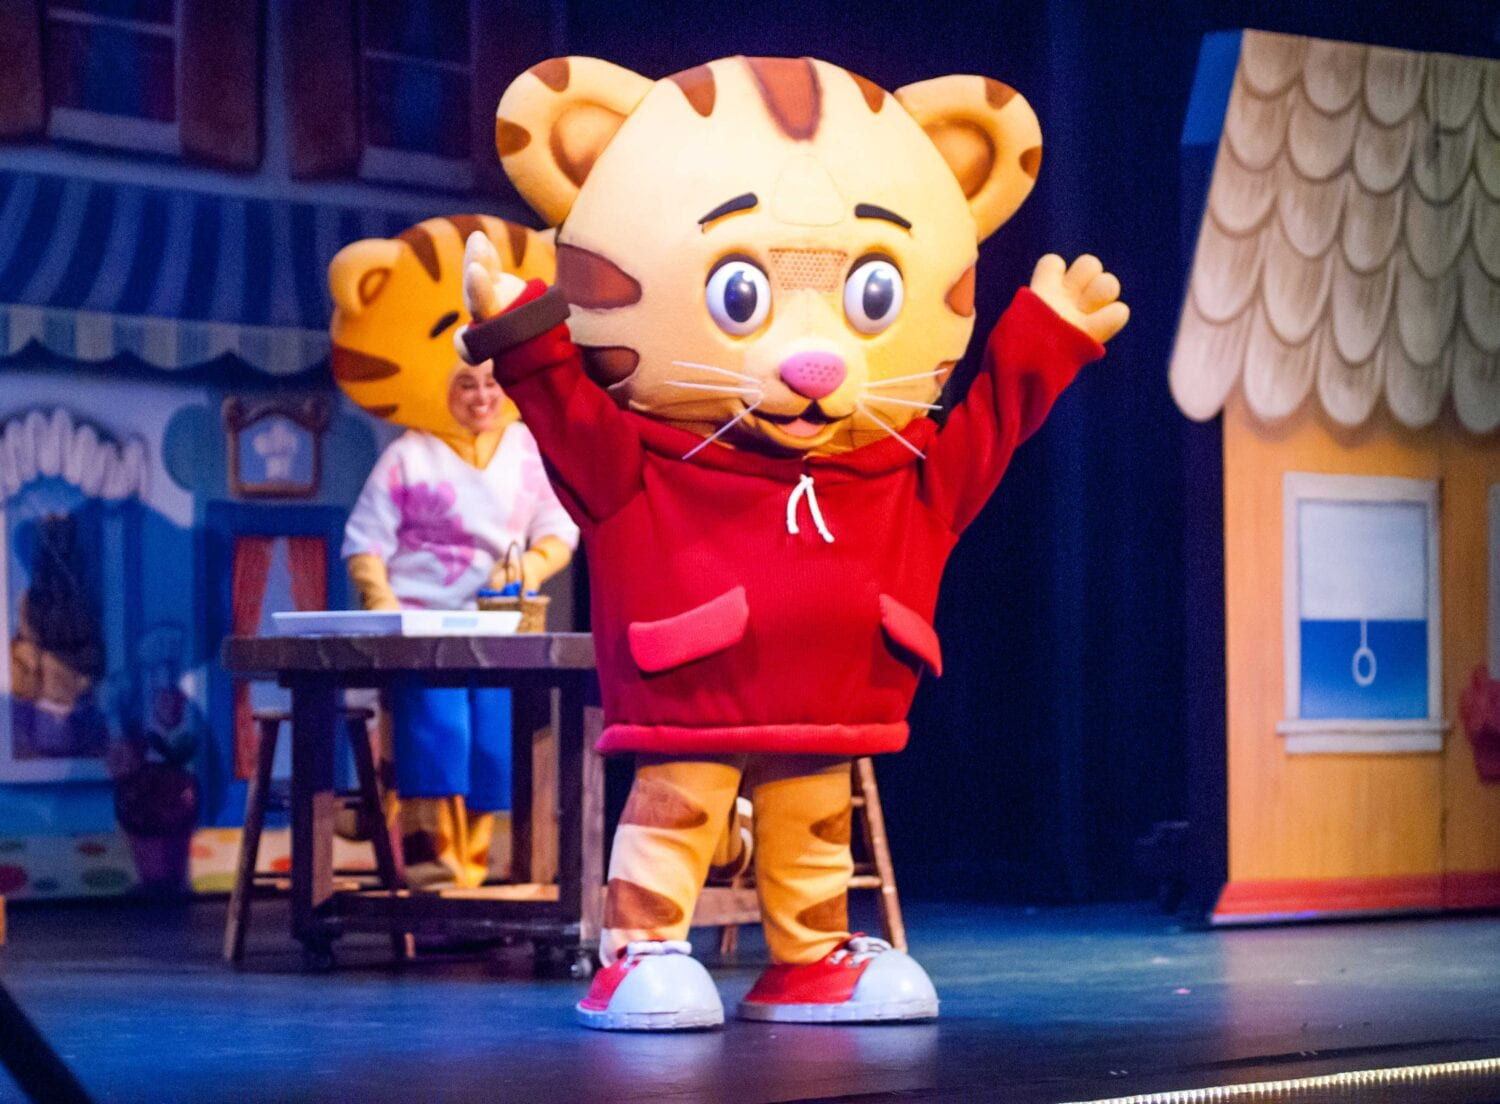 Daniel Tiger's Neighborhood Live, 2016 - Photo by Jeff Sprang Photography